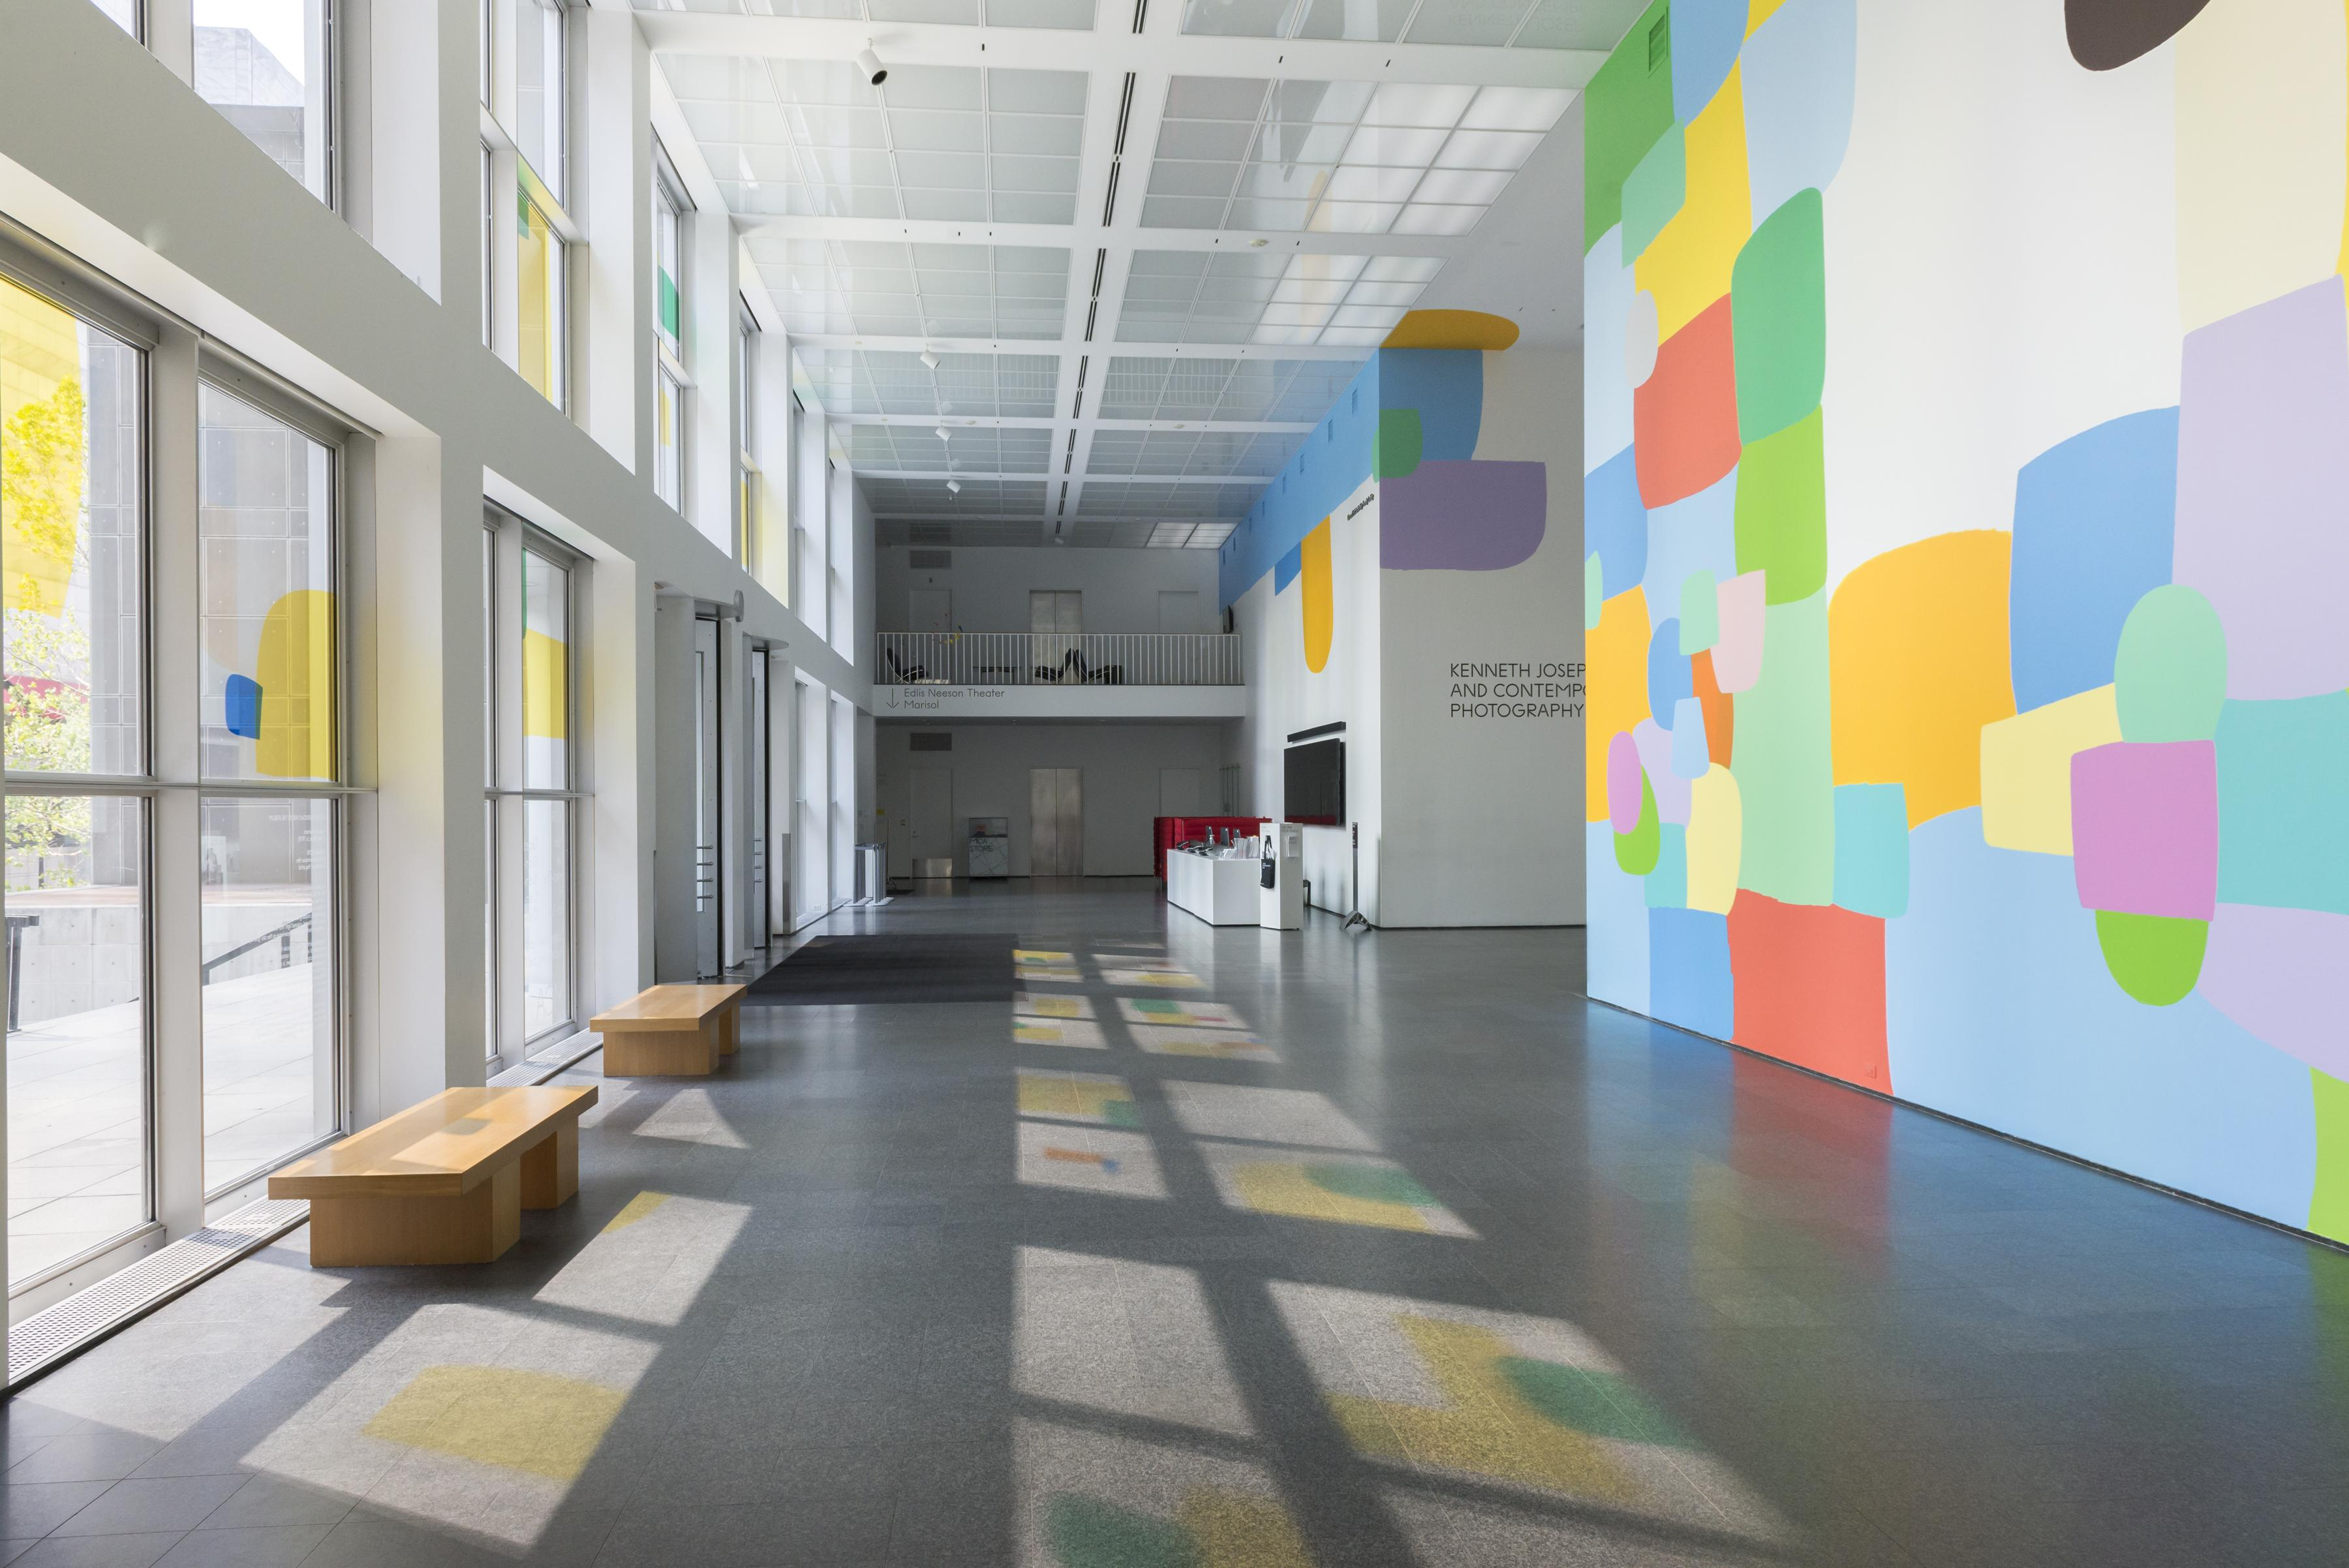 The MCA Atrium features a prominent, colorful mural on multiple walls. Colored panels on the windows create colorful shadows on the floor.